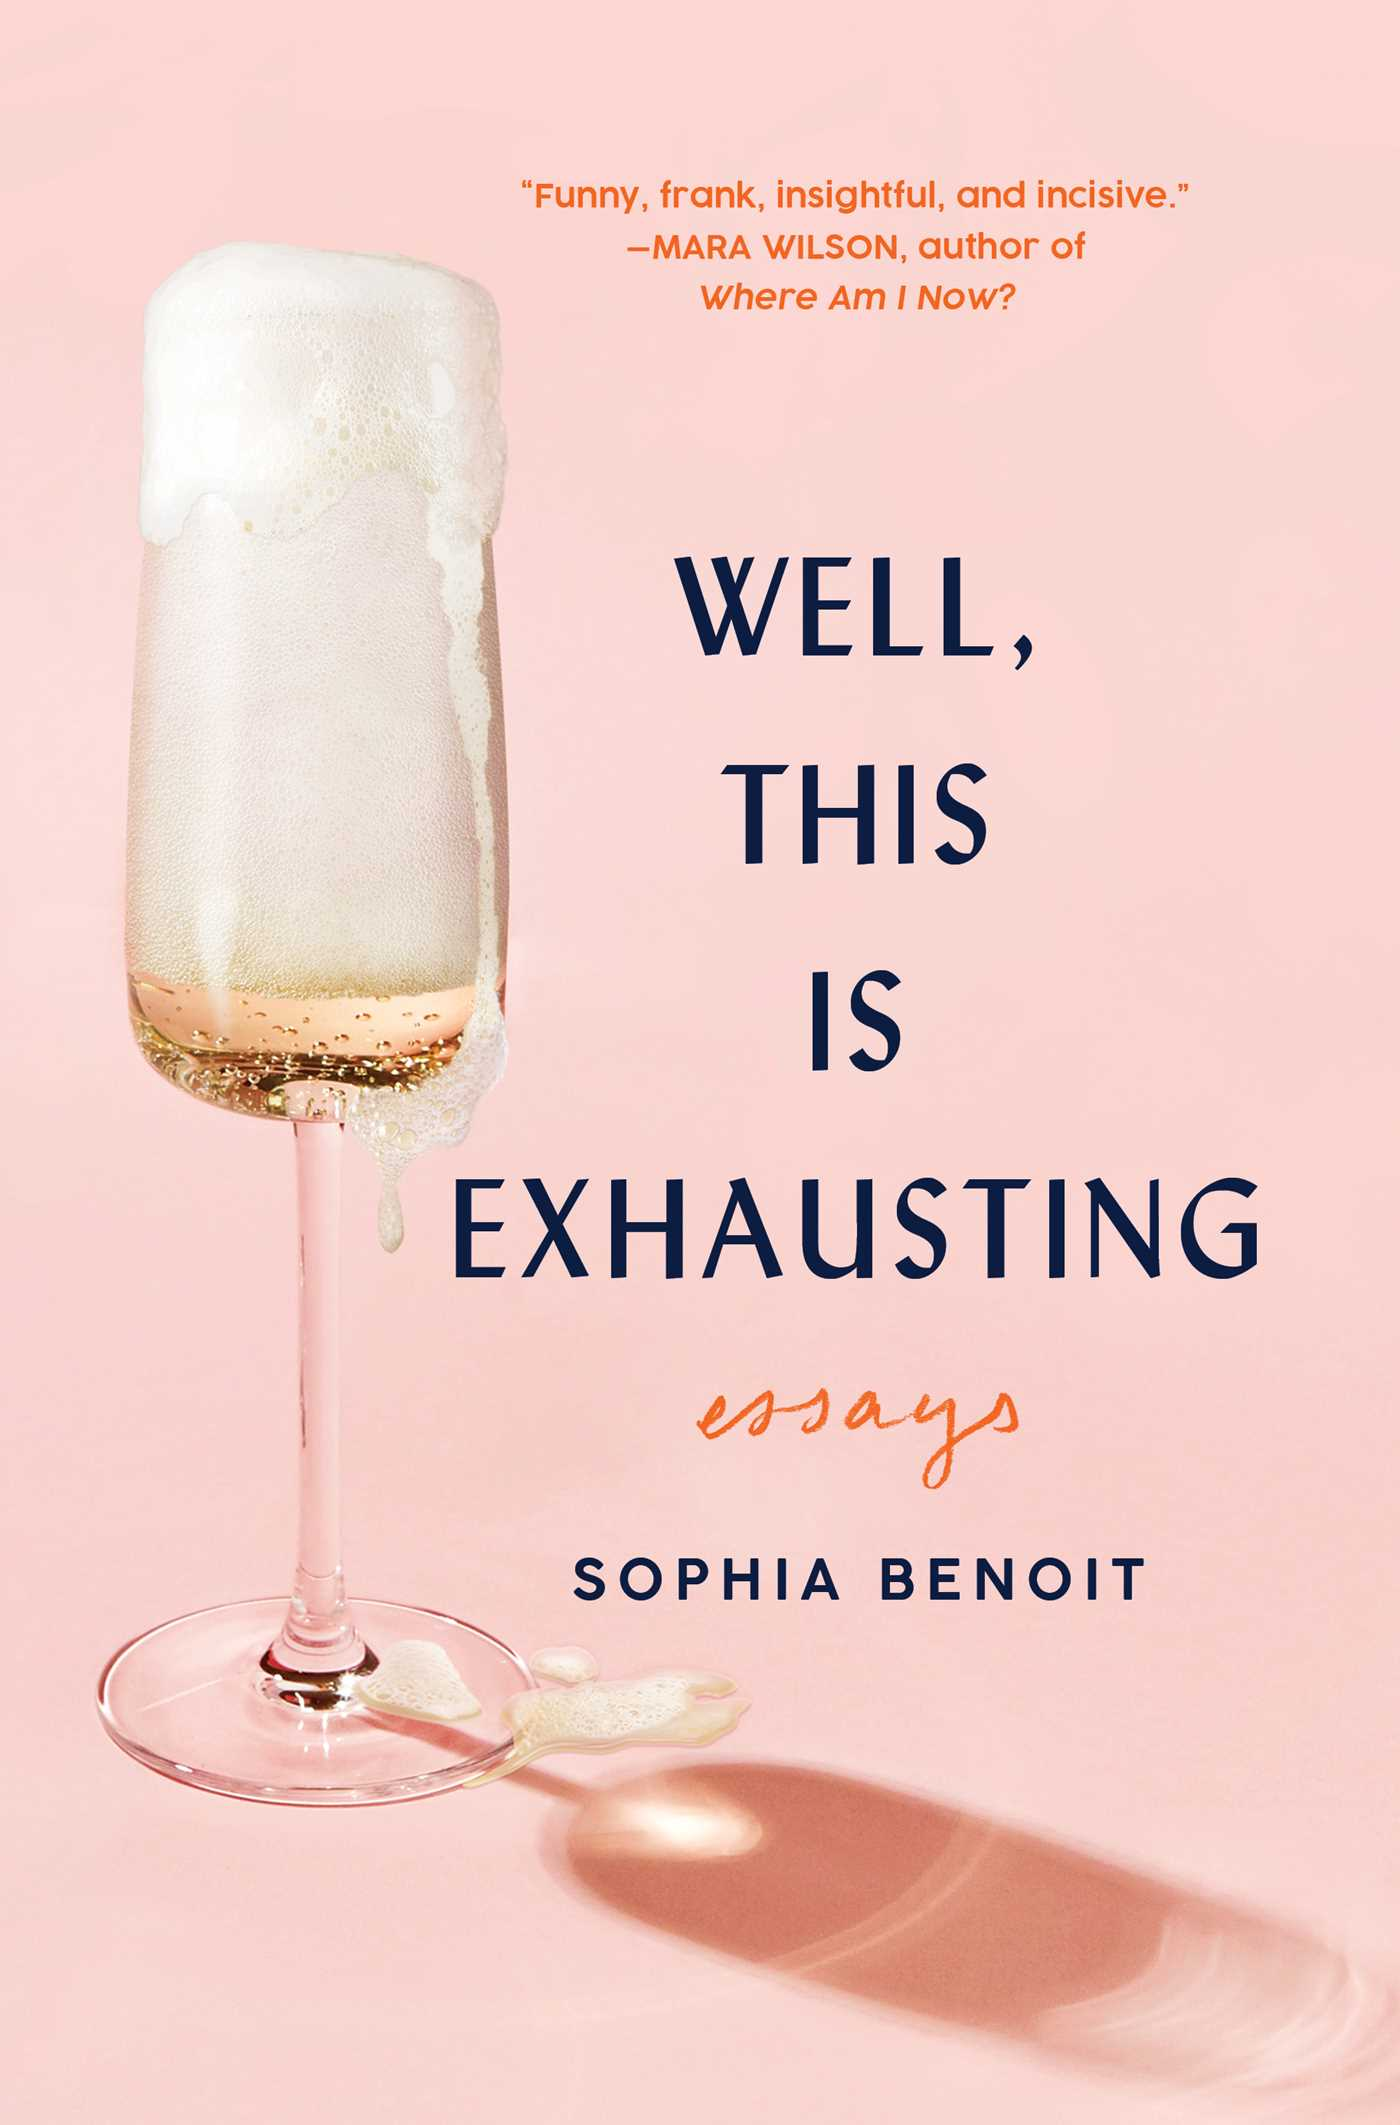 Well, This Is Exhausting: Essays